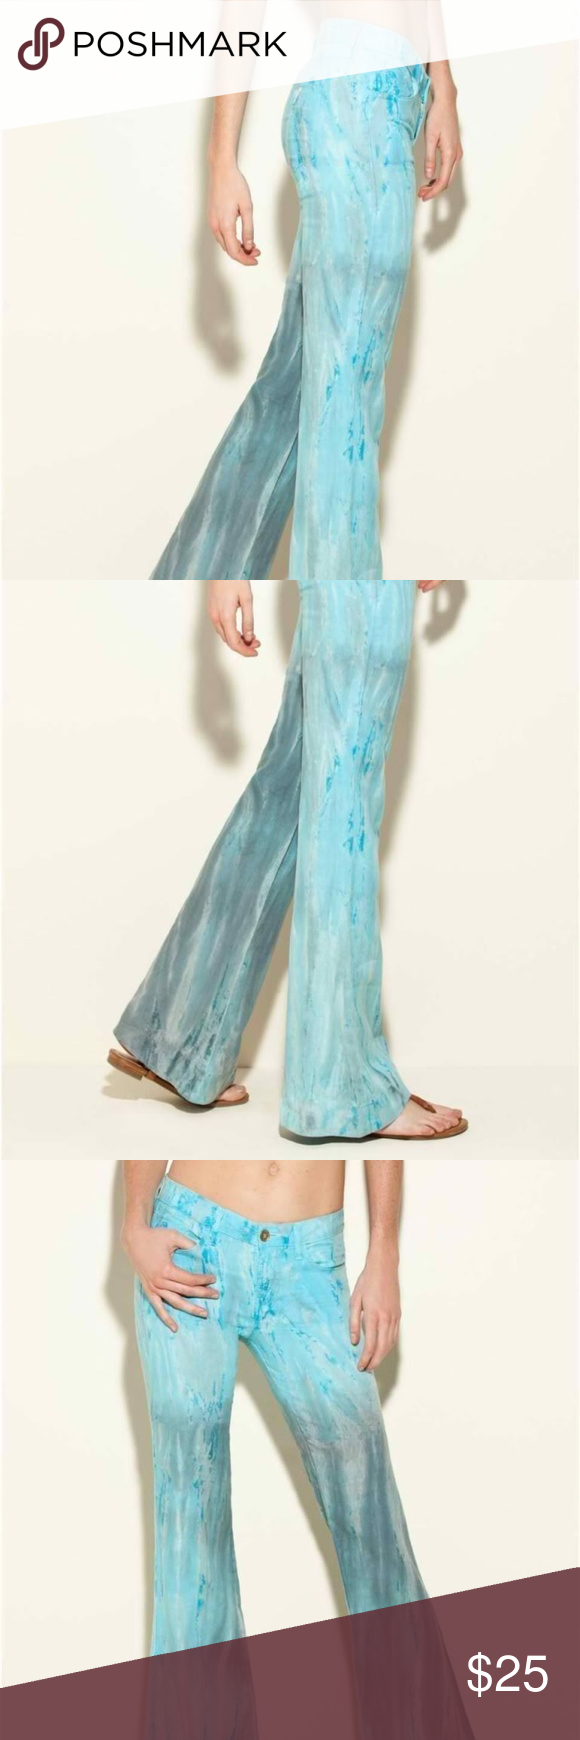 New GUESS Brittney Flare Linen Pants Boutique Flared